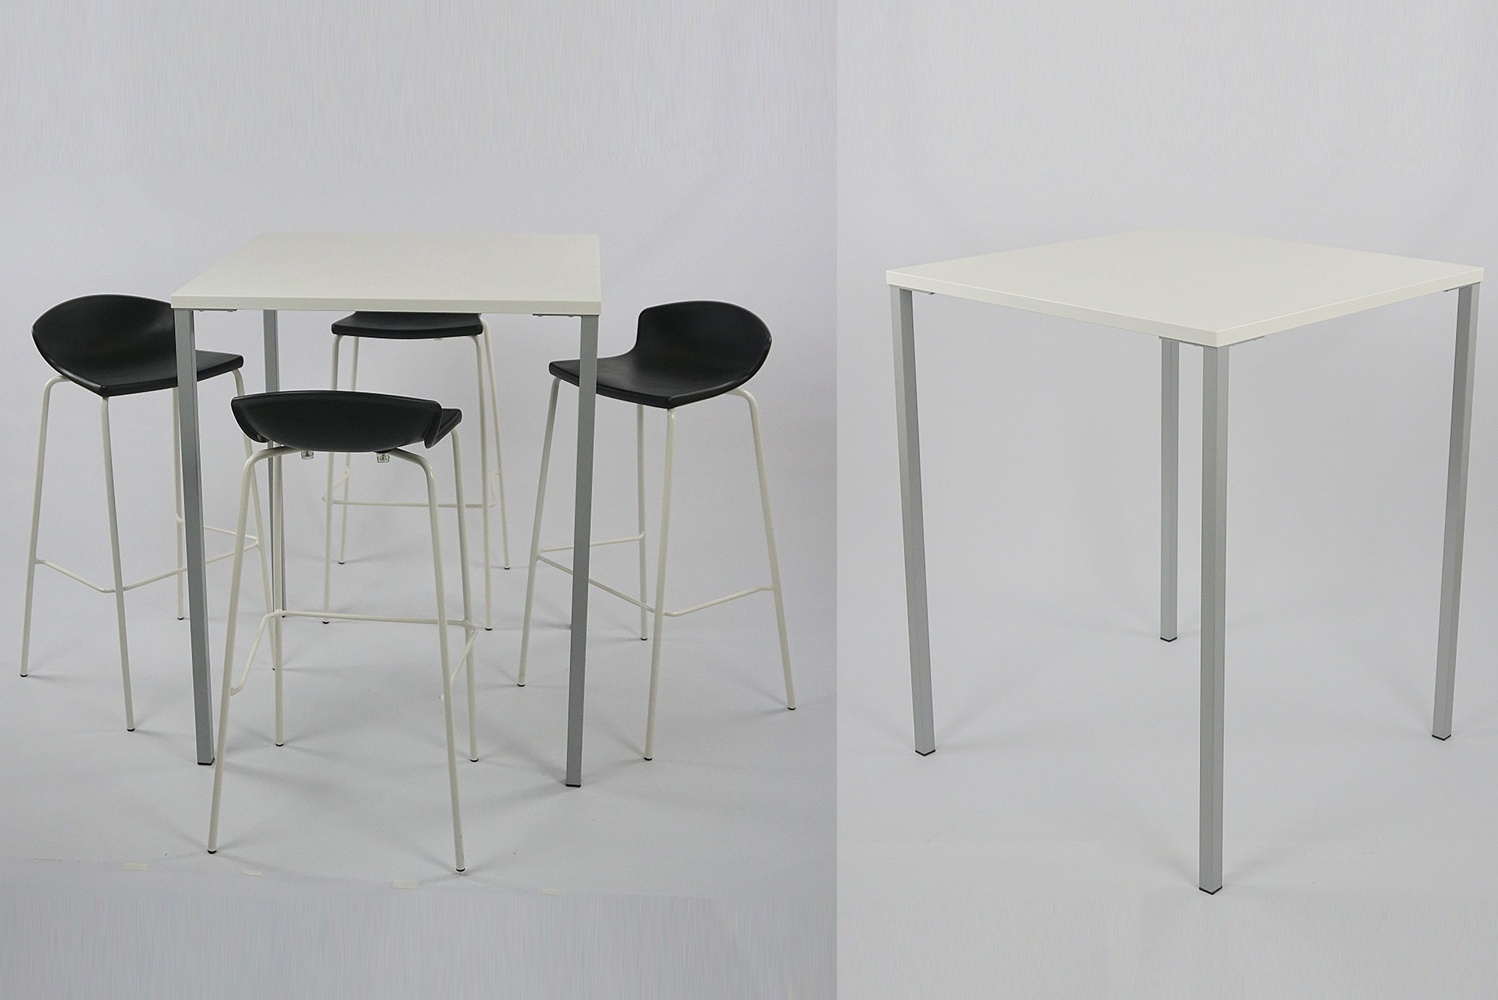 Sim is also available in a square or rectangular top. Legs and top are made of painted steel.